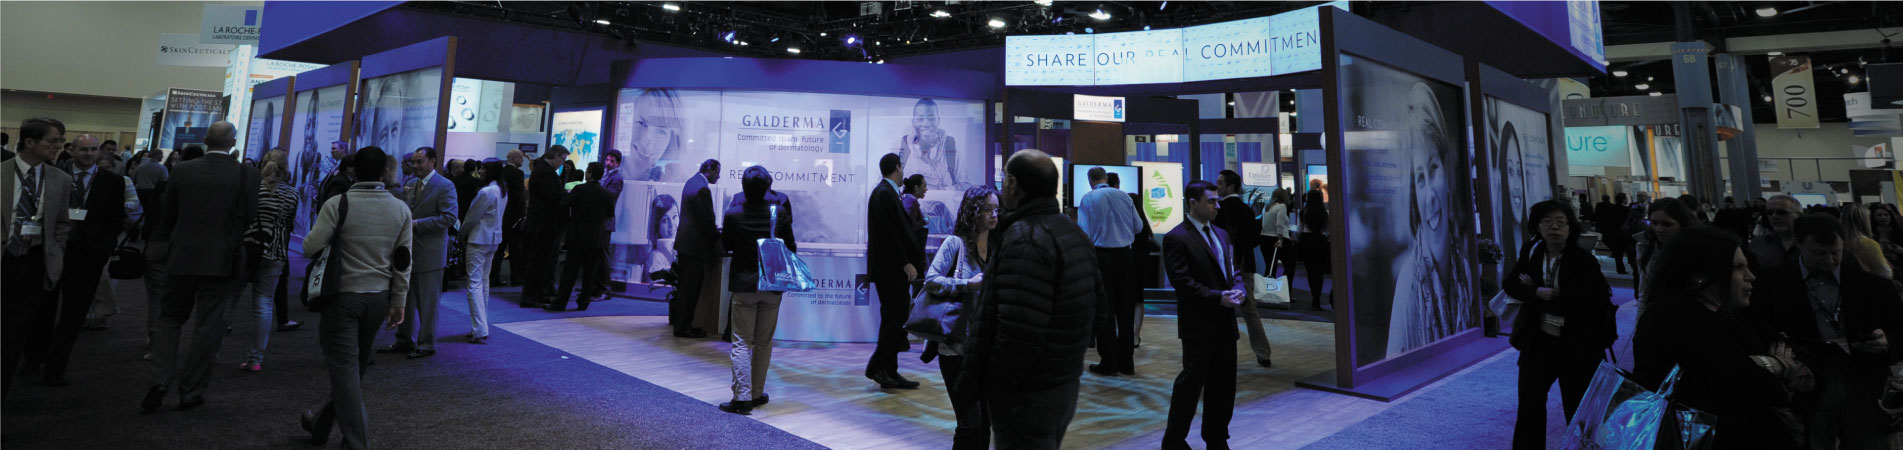 Trade Show Exhibit Design Company Capabilities | DisplayCraft